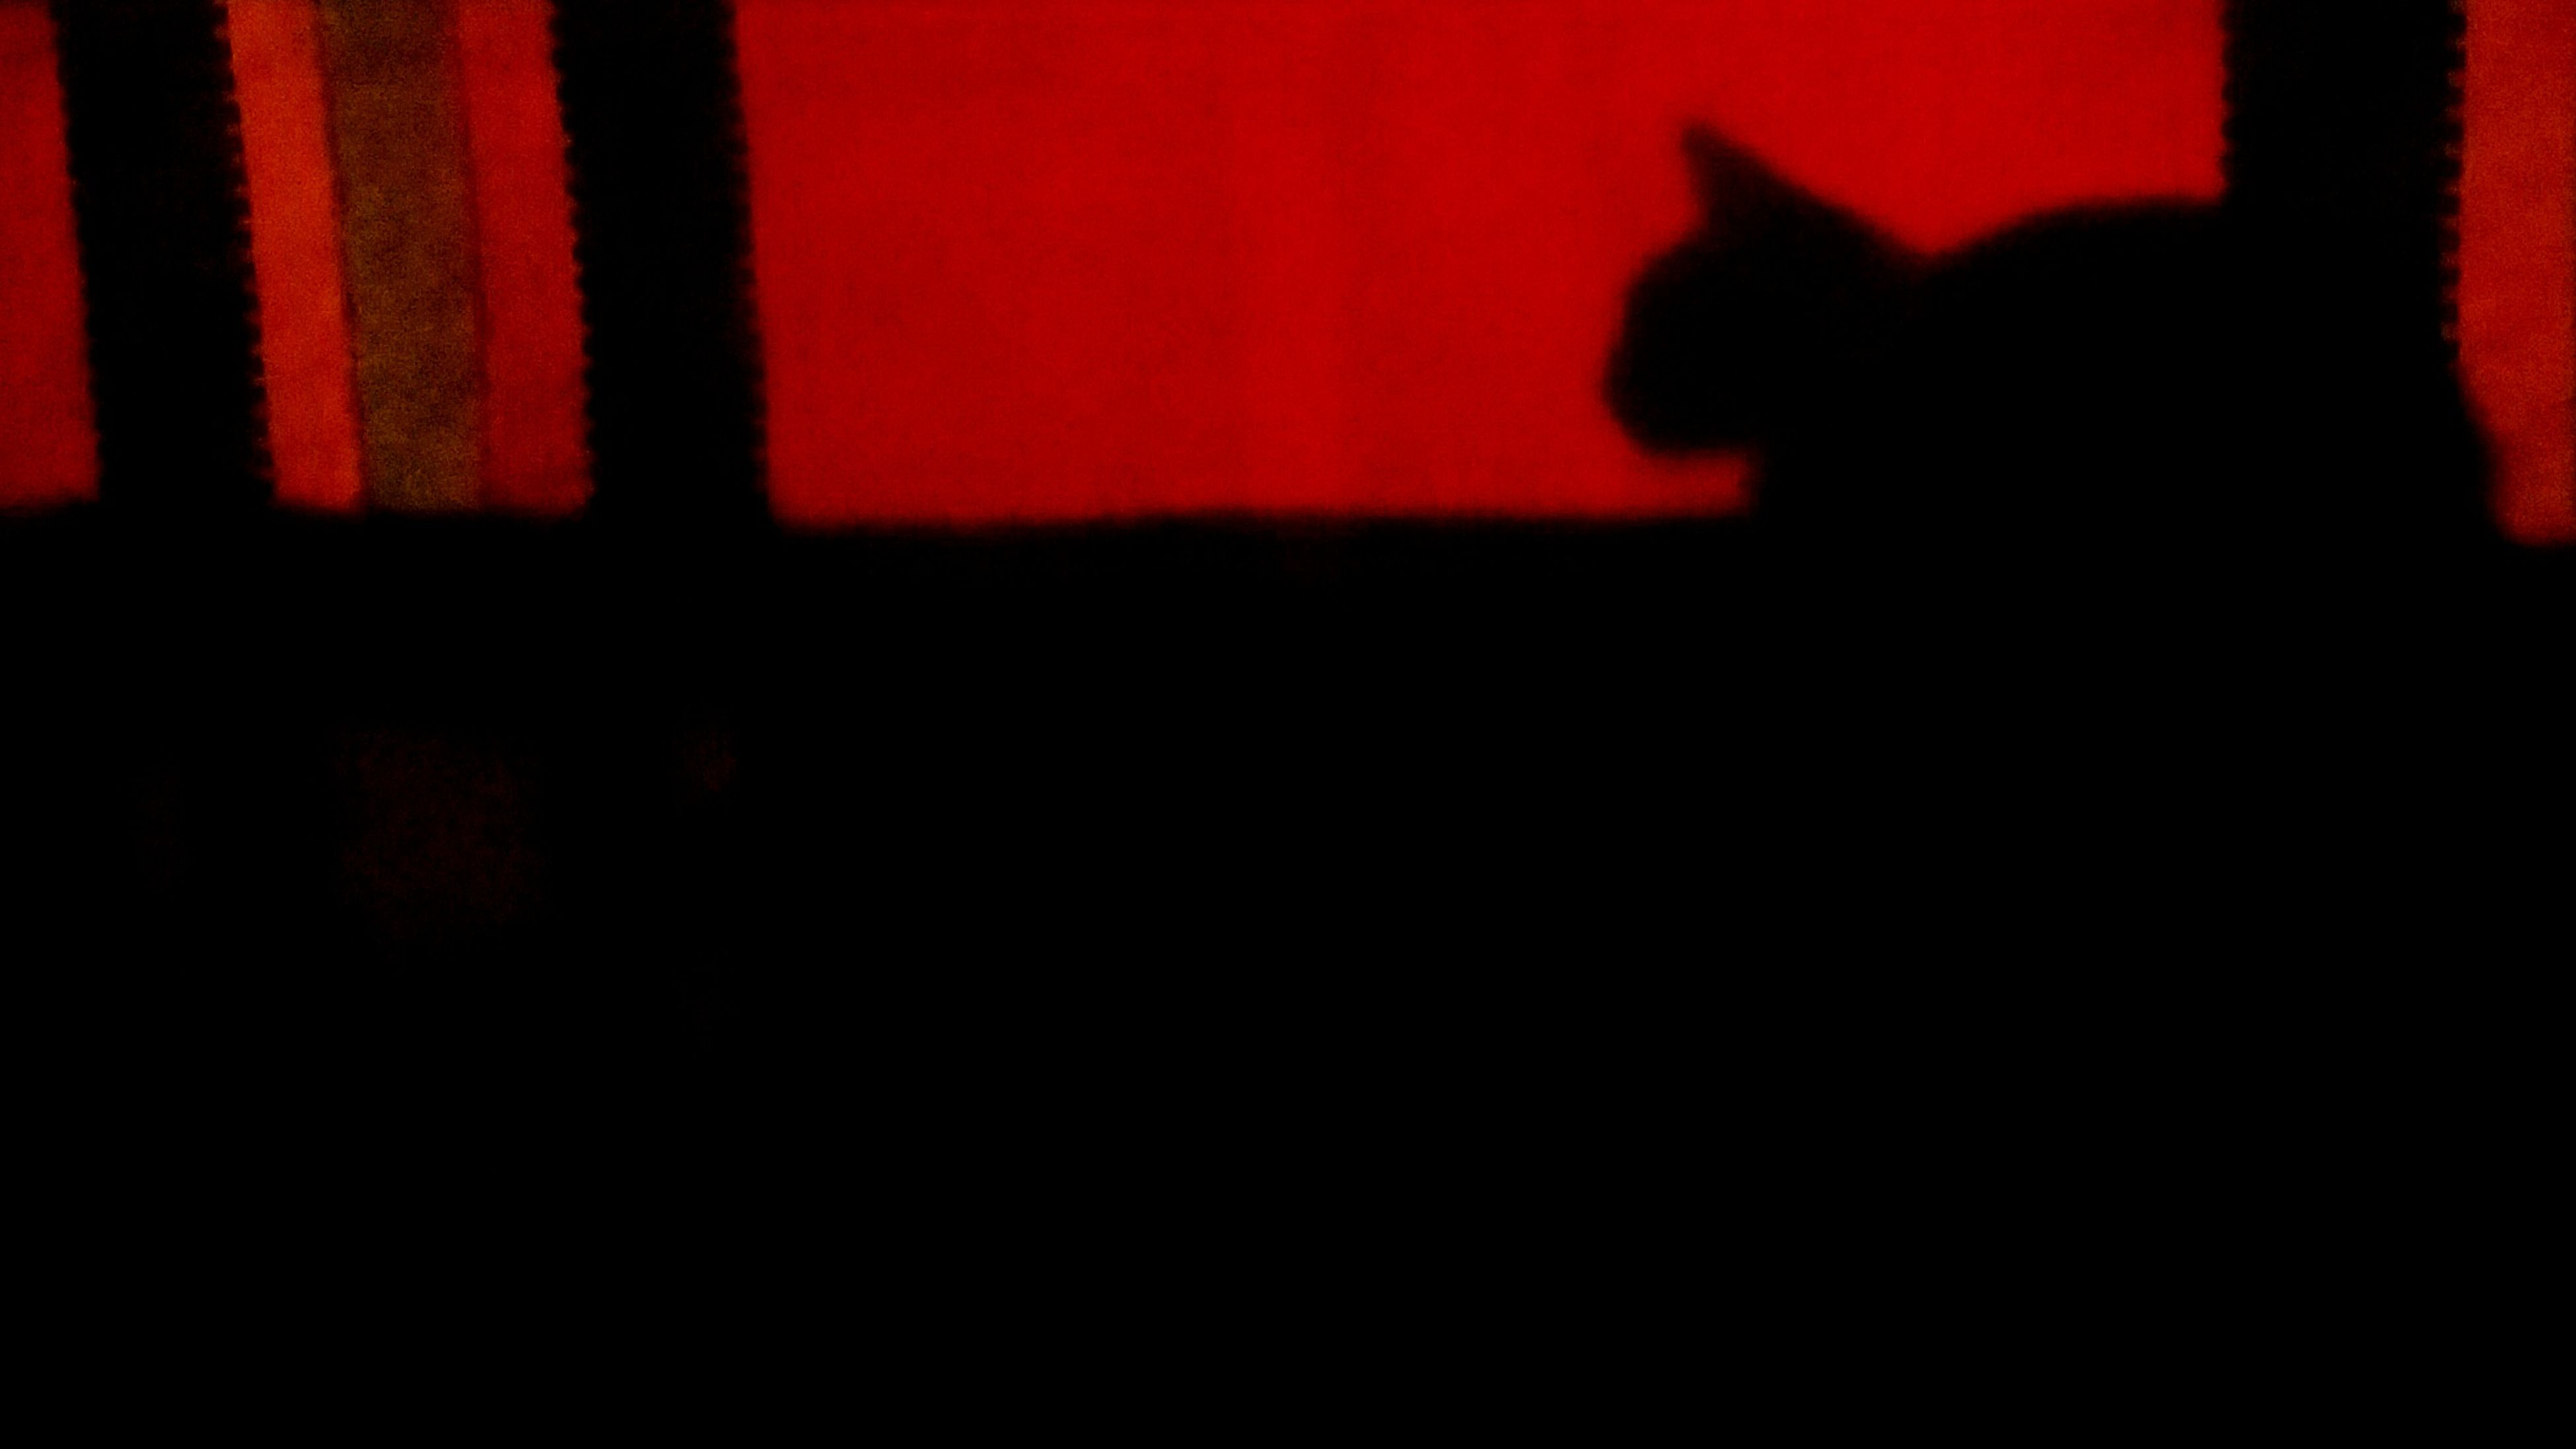 indoors, red, silhouette, dark, orange color, copy space, unrecognizable person, side view, home interior, pets, relaxation, domestic animals, sunset, sitting, standing, men, shadow, rear view